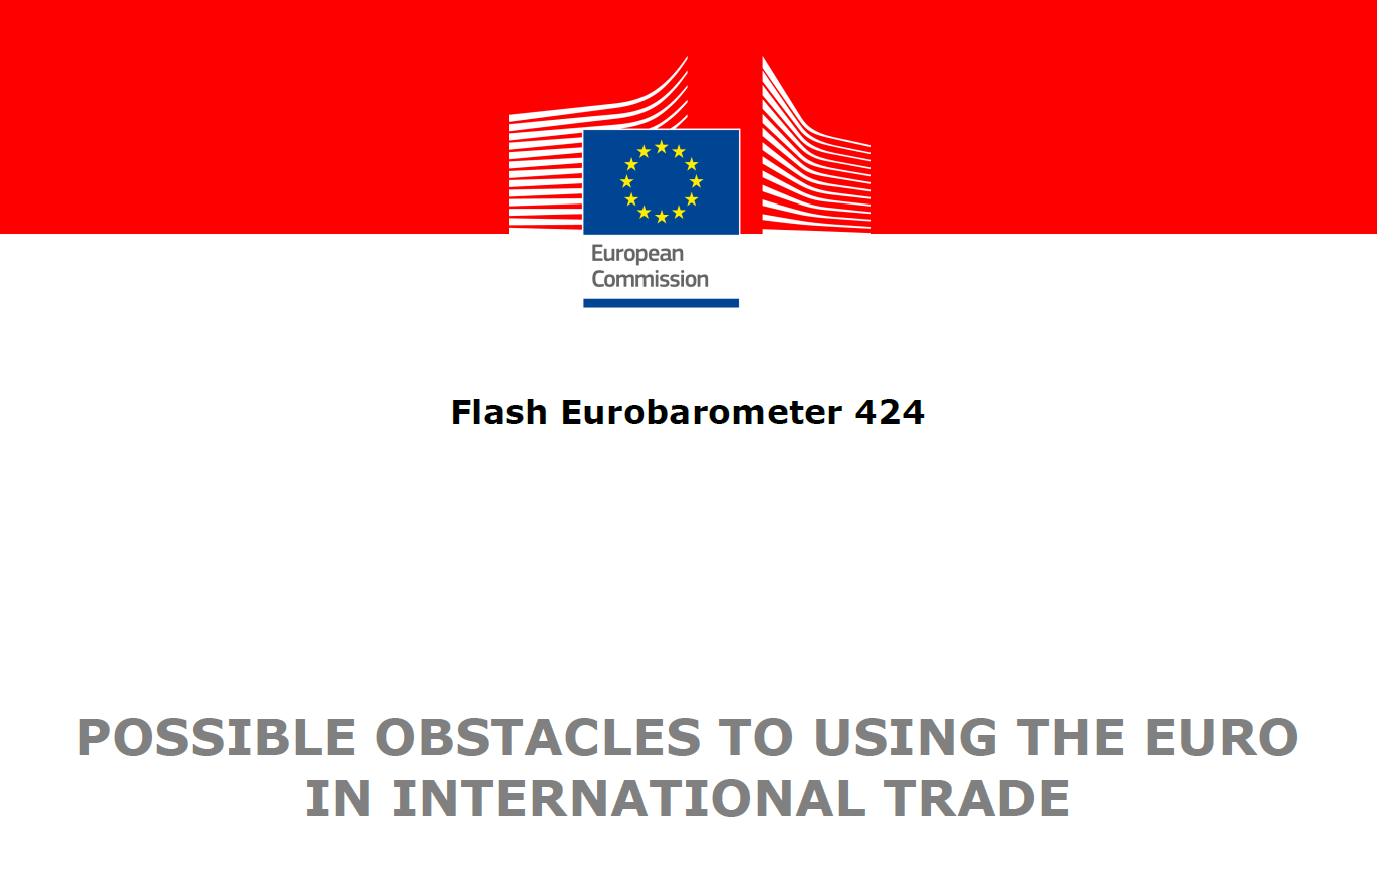 Eurobarometer: The role of the euro in international trade